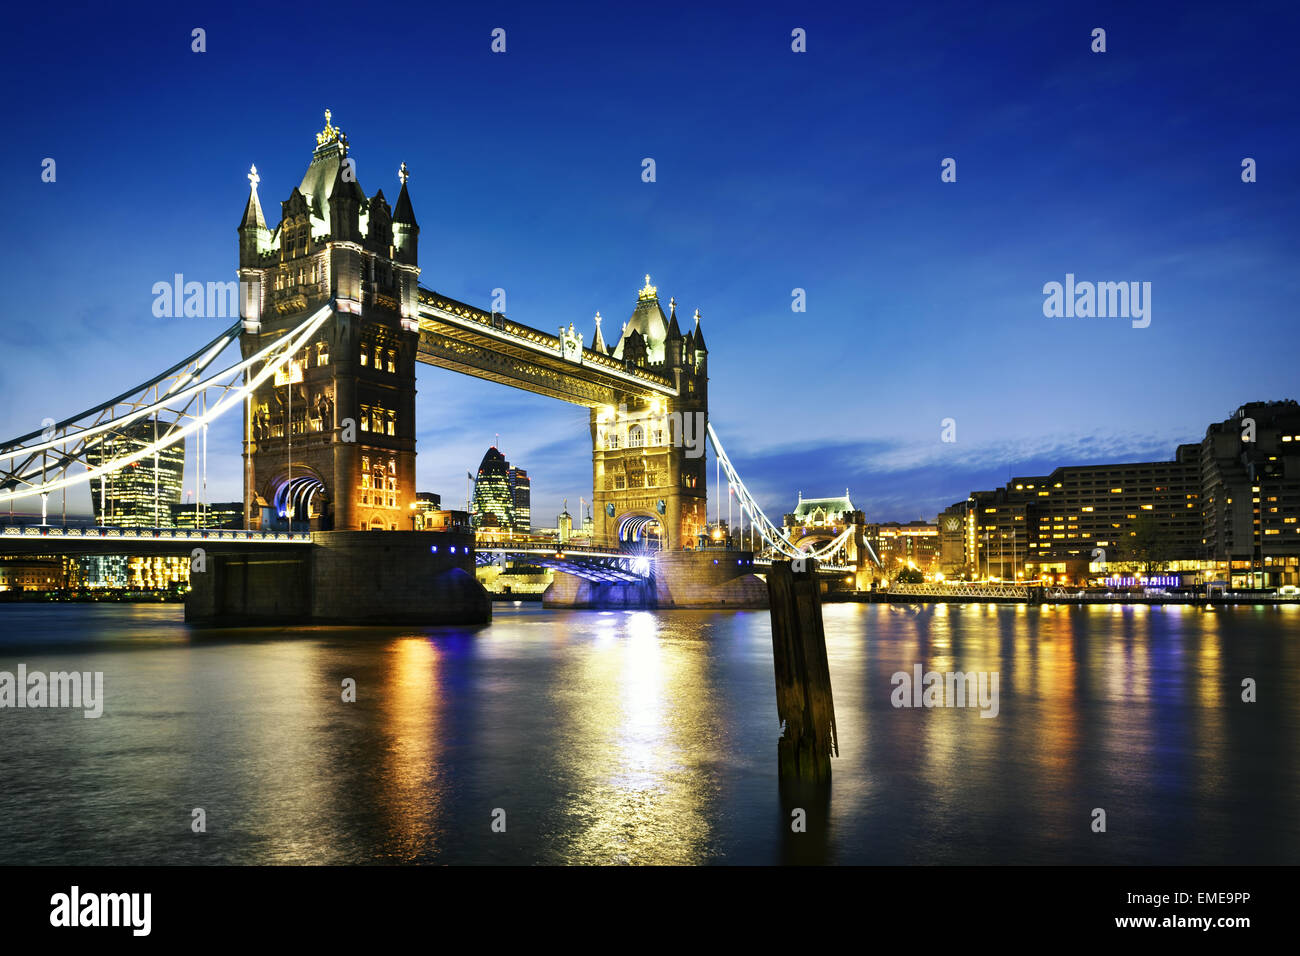 Berühmte Tower Bridge von London, England Nacht Stockfoto